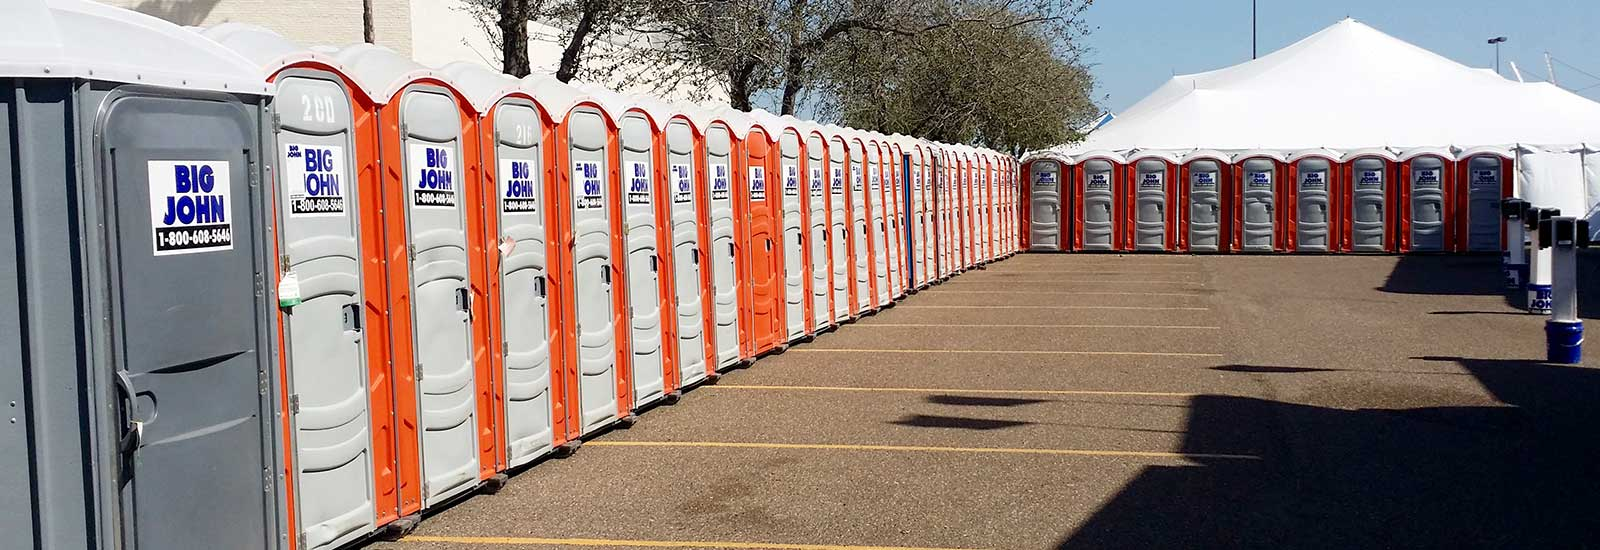 Porta-potty rentals in San Antonio Texas, Edinburg, Harlingen, Brownsville, McAllen TX, New Braunfels, San Marcos, Rio Grande Valley